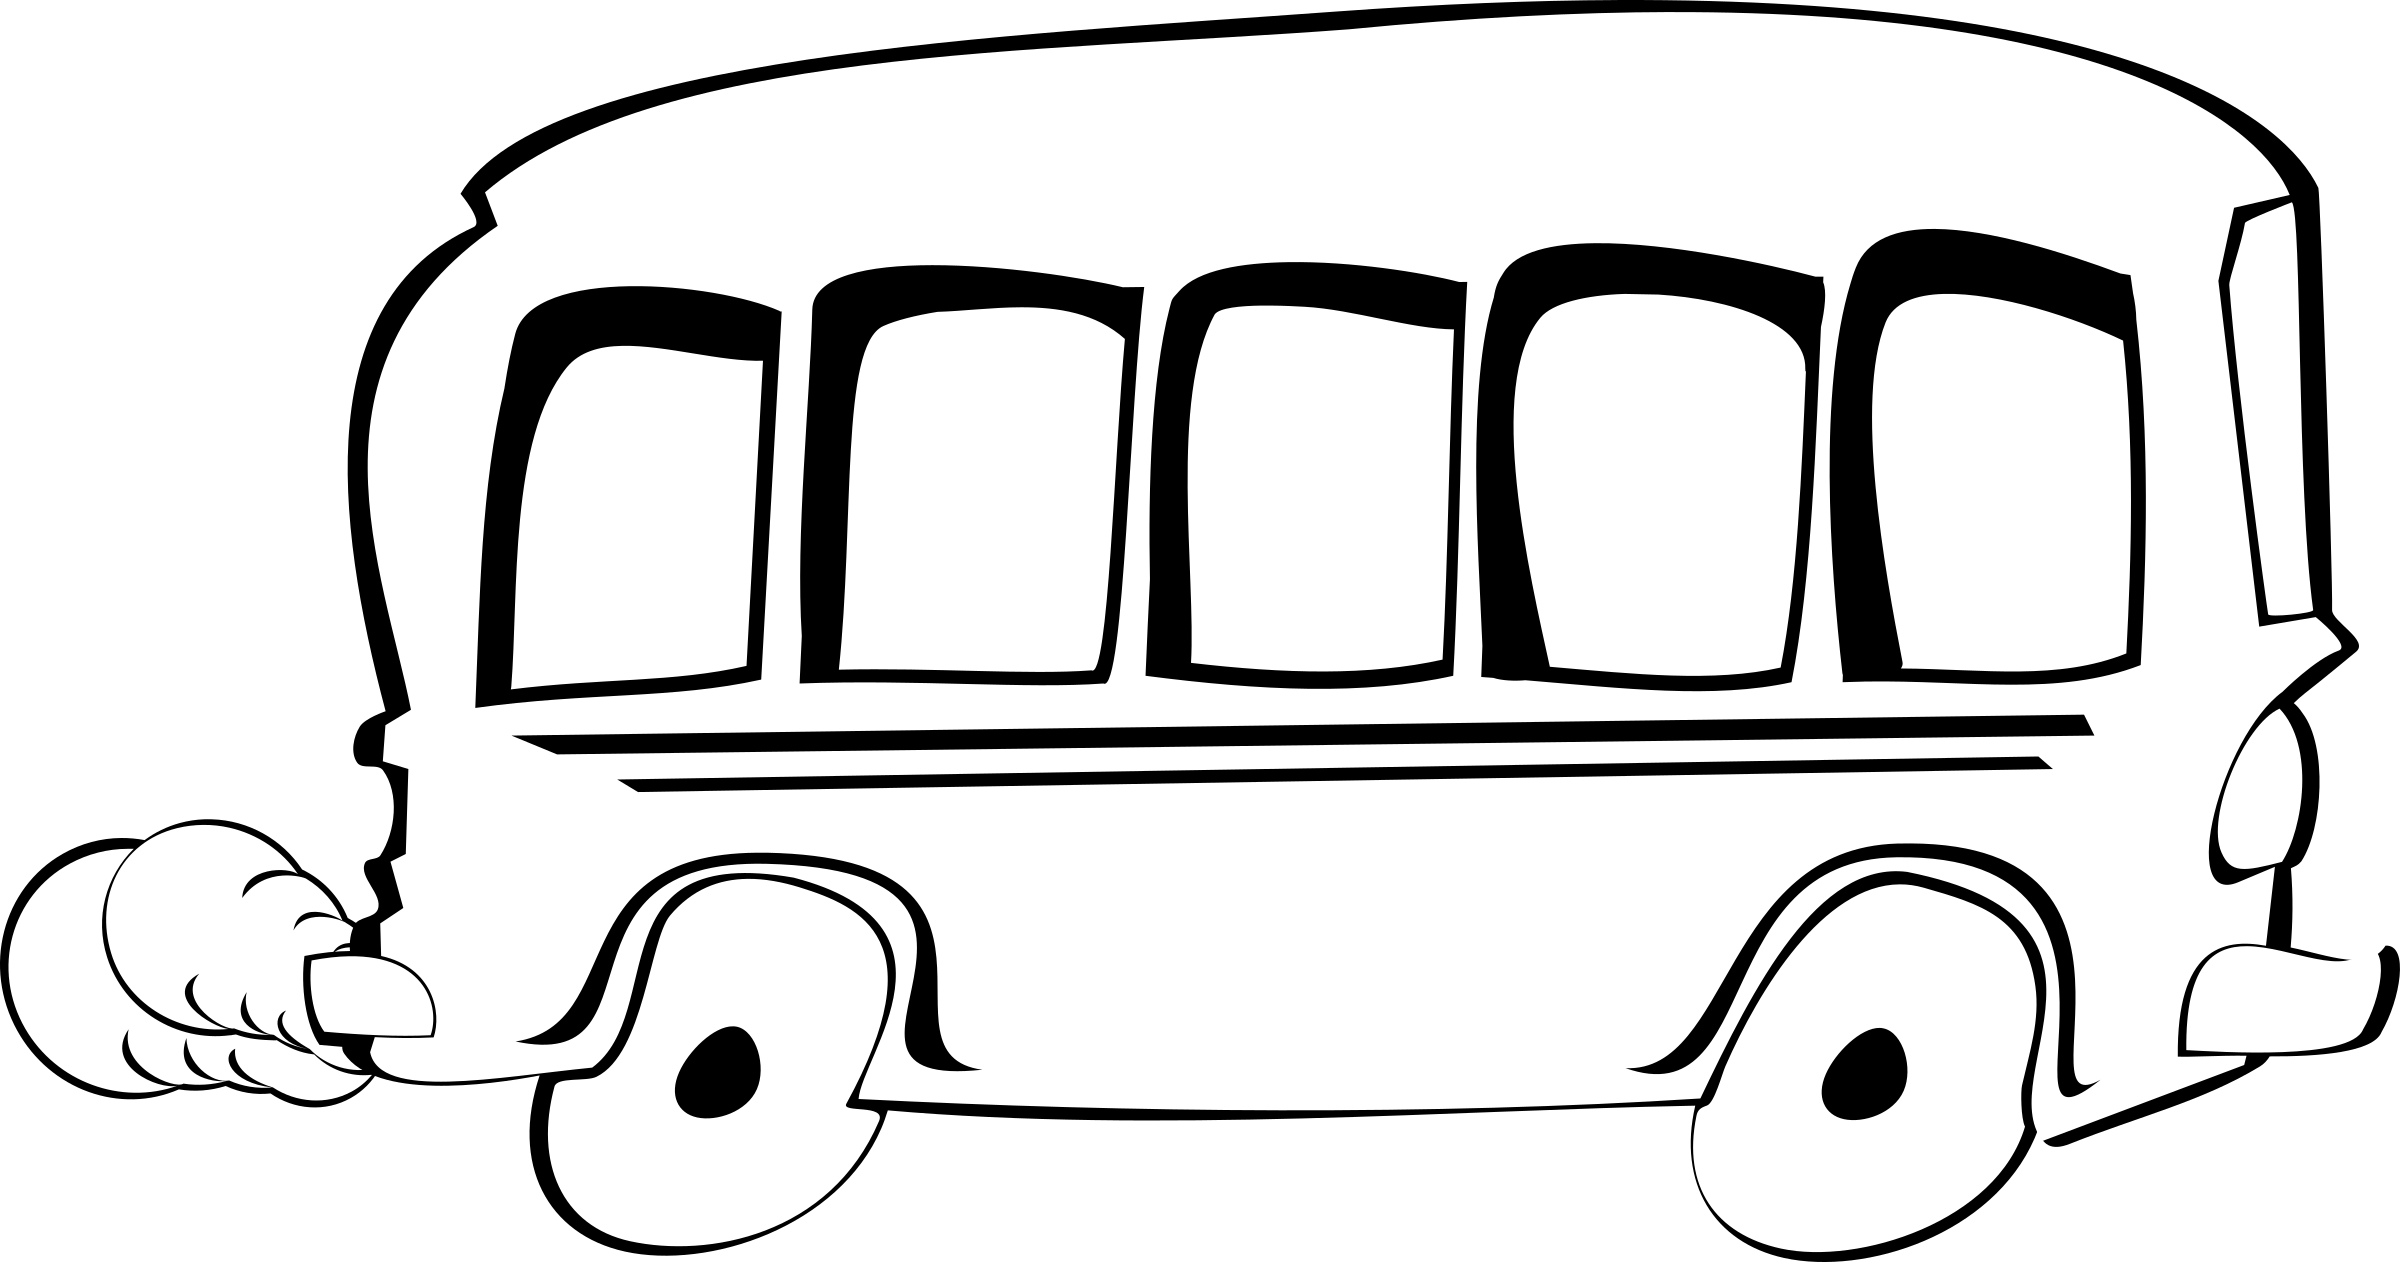 Clipart school bus black and white banner freeuse Clipart - bus remixed banner freeuse